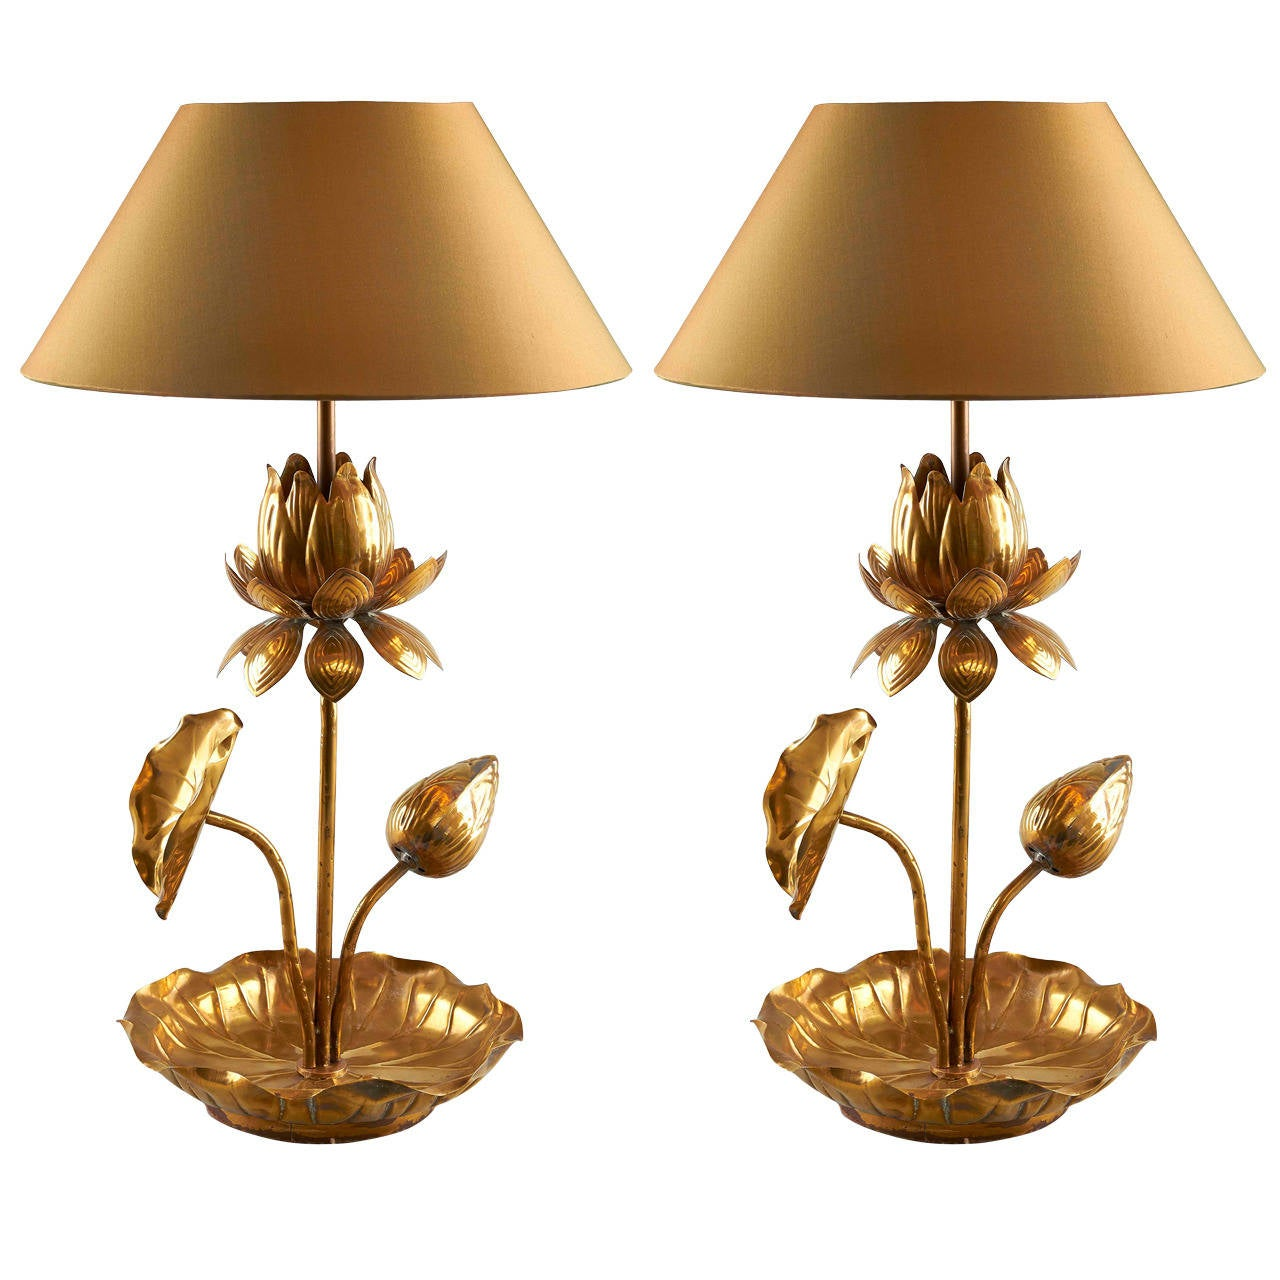 Art deco silver and stacked crystal ball floor lamp at 1stdibs - Elegant Pair Of Brass Lotus Table Lamps 1